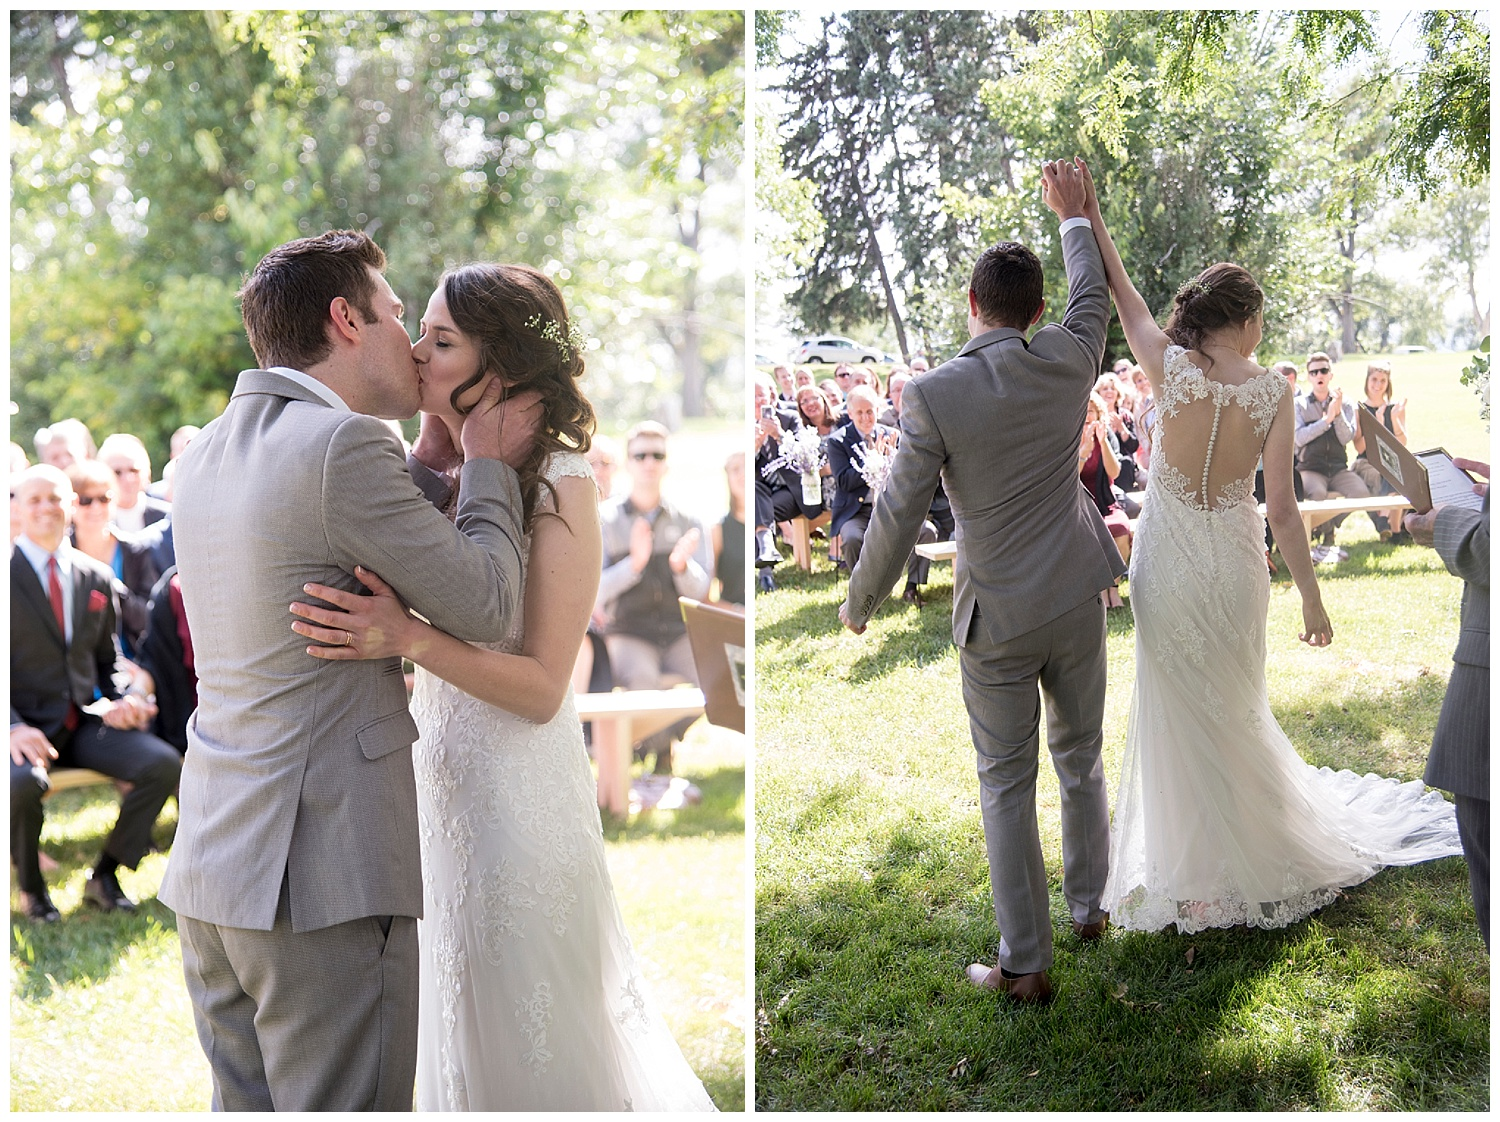 Adorable Bride and Groom Kissing | Bethany and Jono's Intimate DIY Wedding | Colorado Springs Wedding Photographer | Farm Wedding Photographer | Apollo Fields Wedding Photojournalism